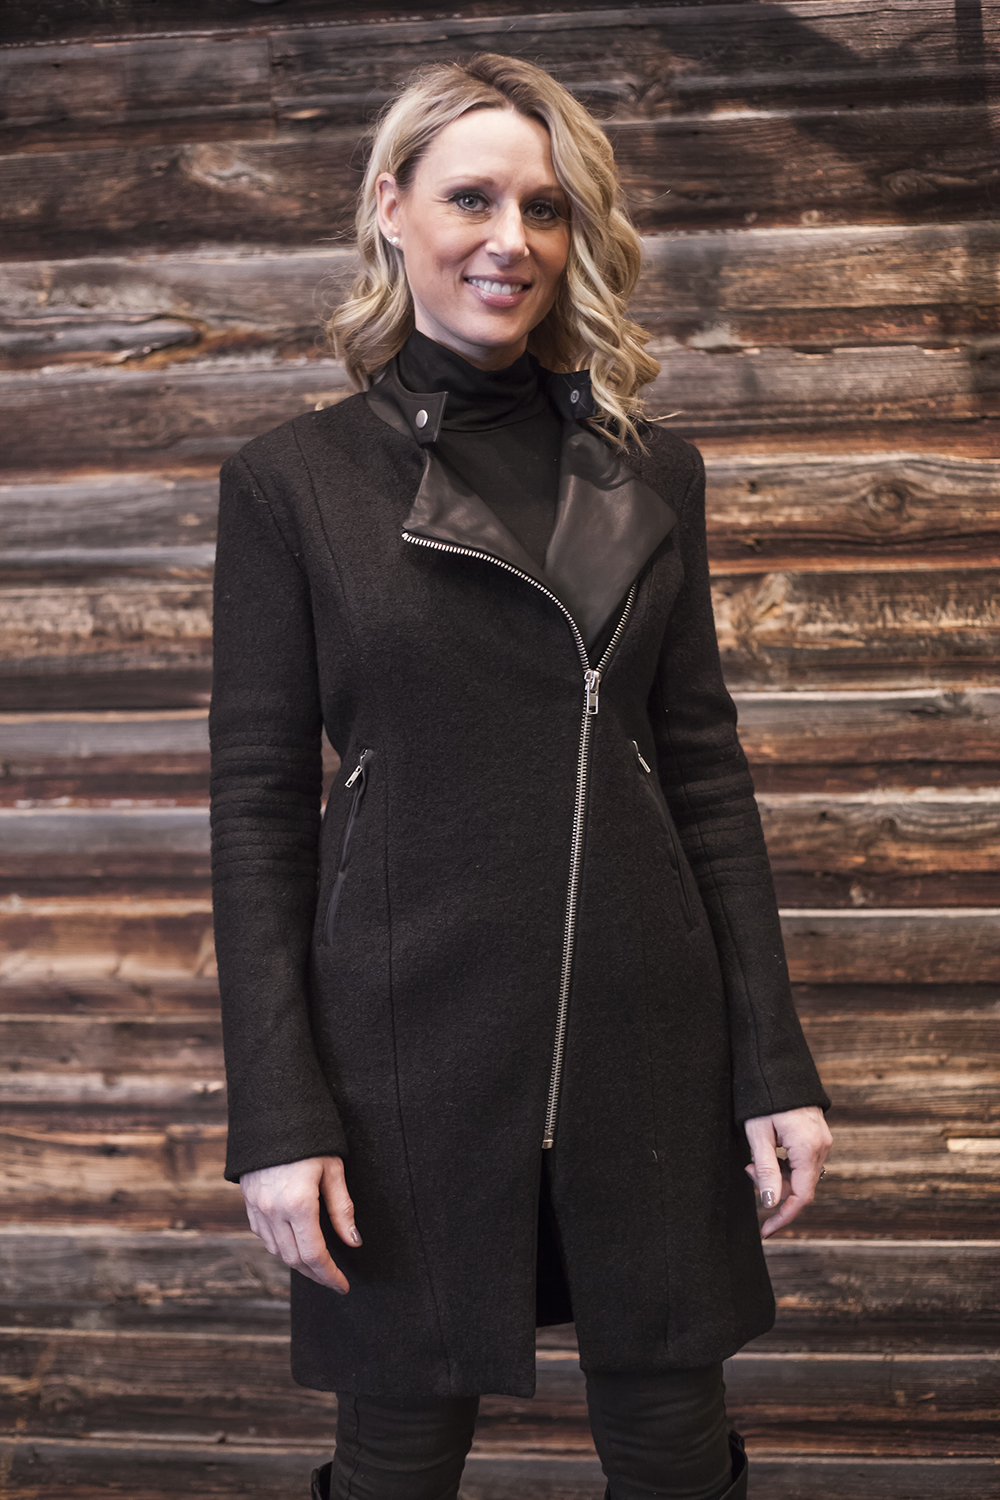 edmonton womens fashion boutique clothing store winter coats and jackets bb dakota finleigh 2014 01